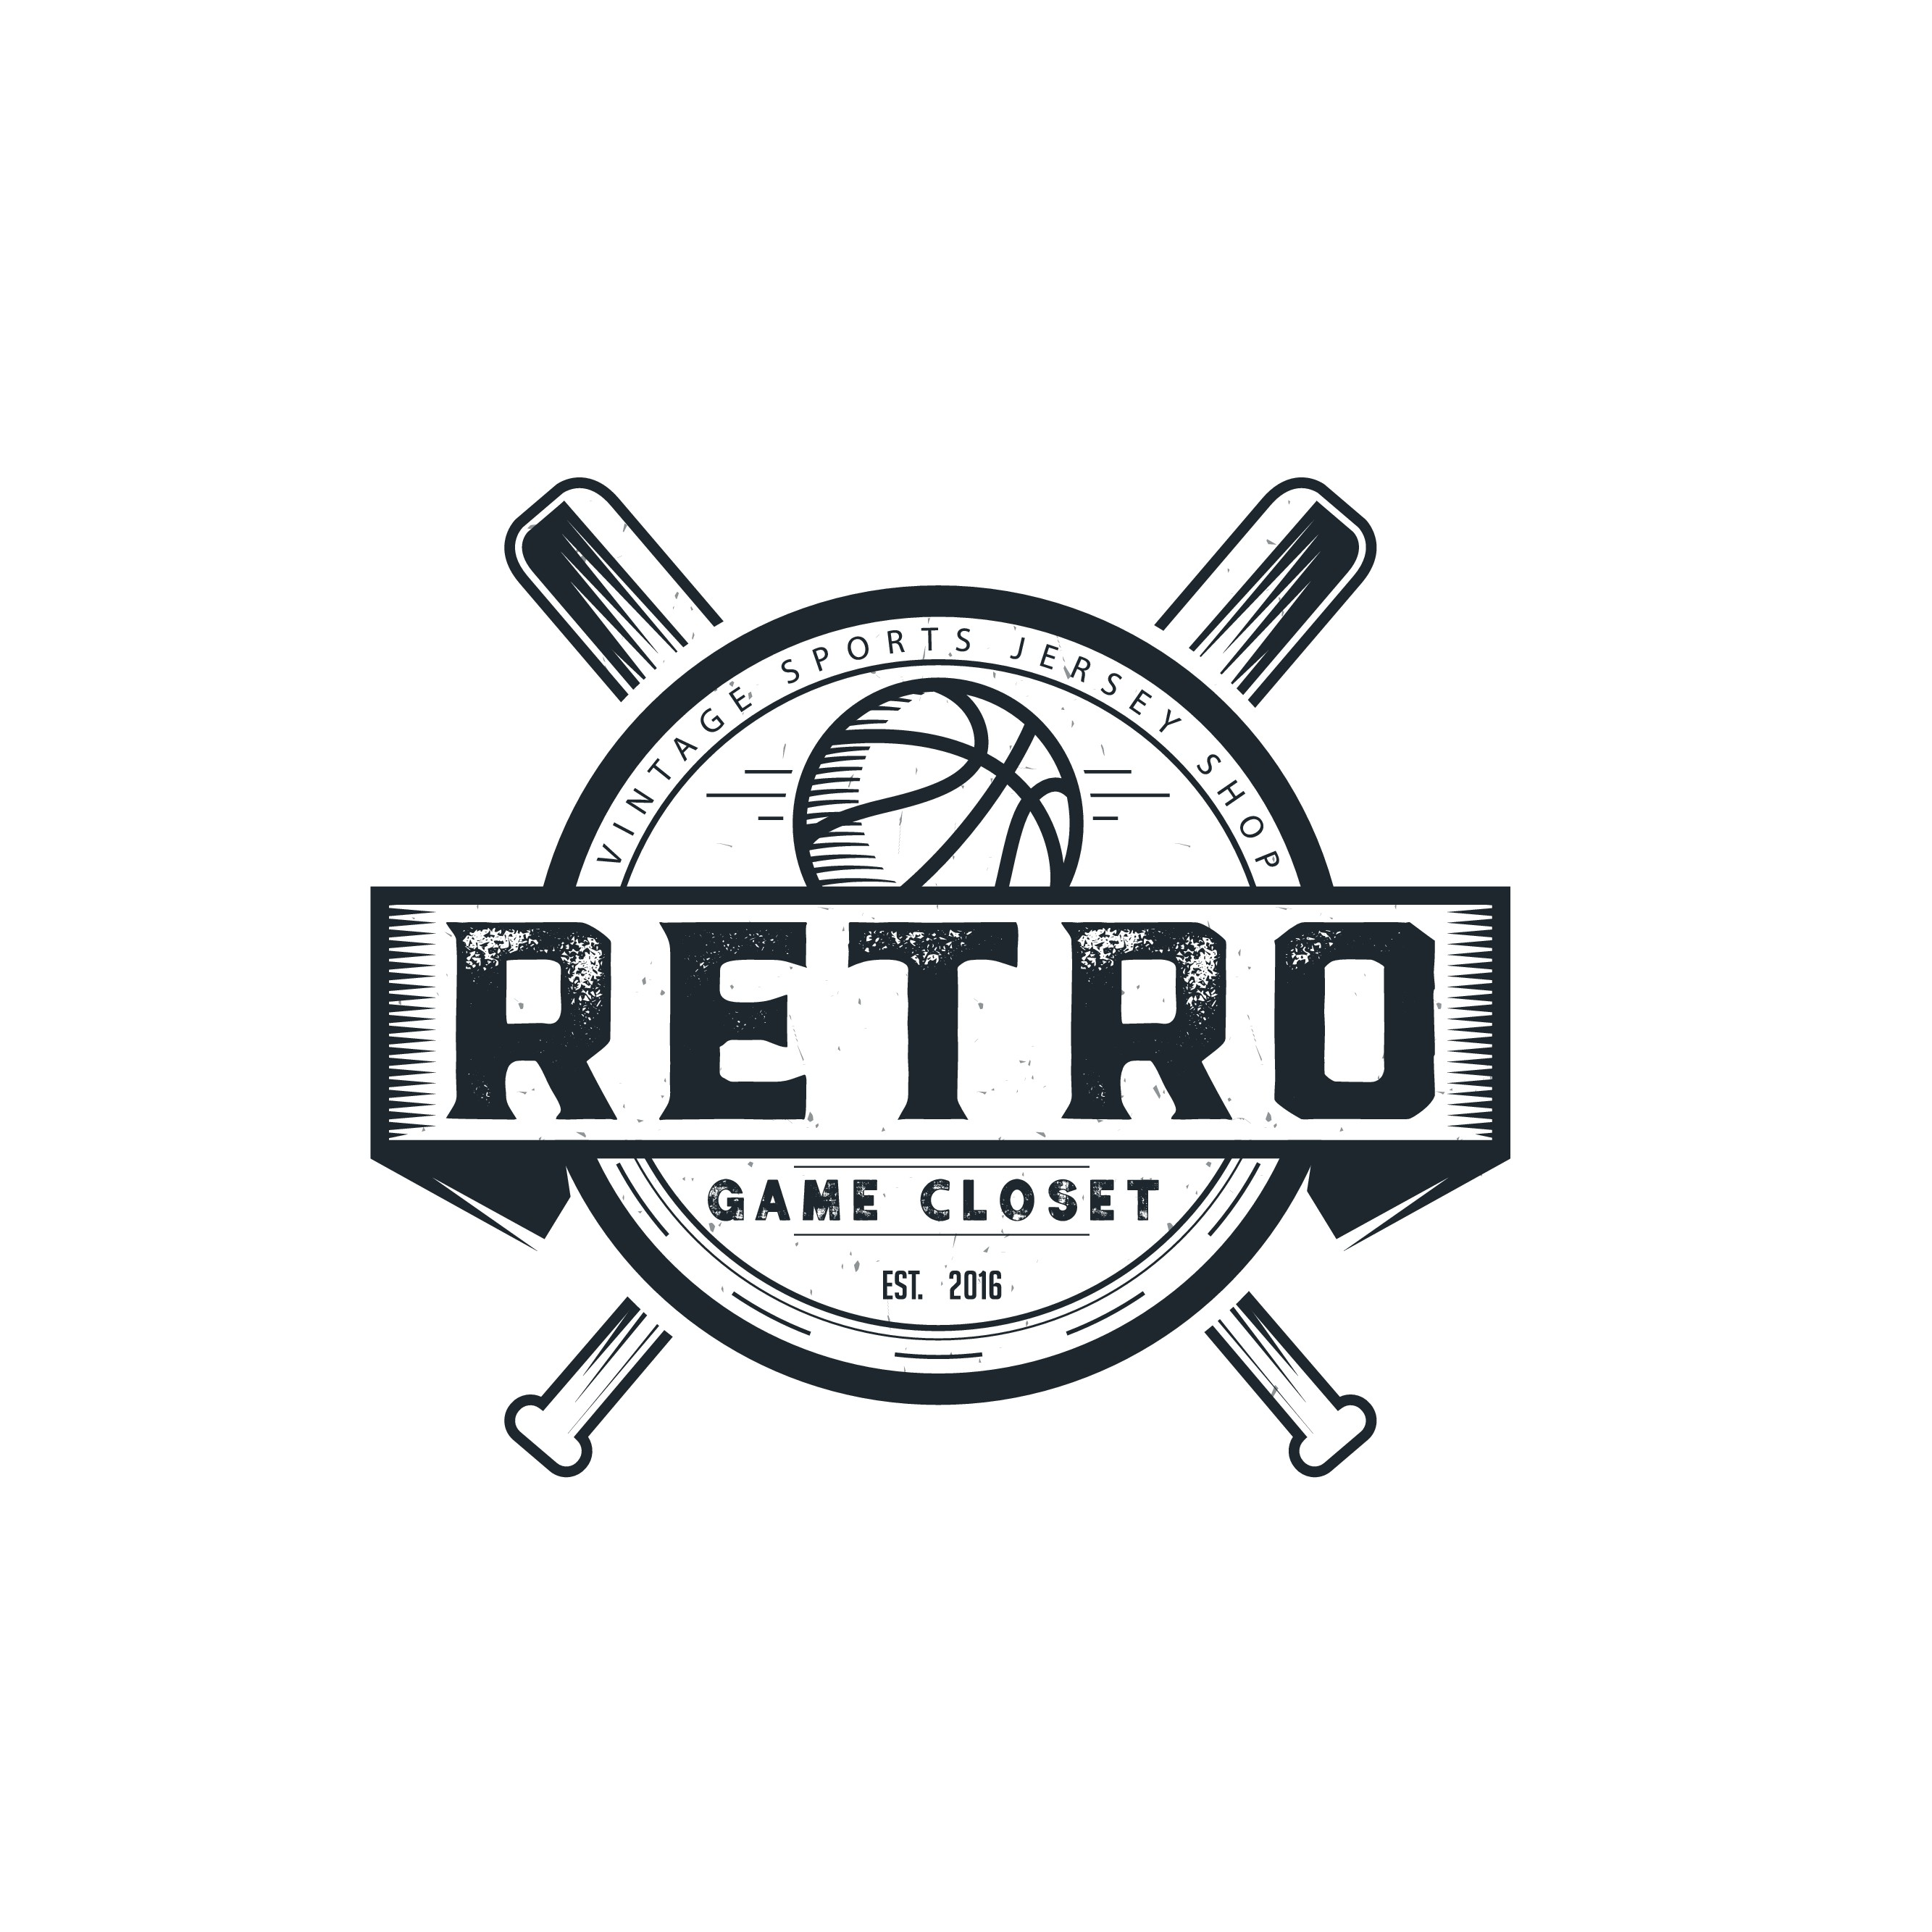 create me a logo for retro game closest that would also look great on a t shirt or hat